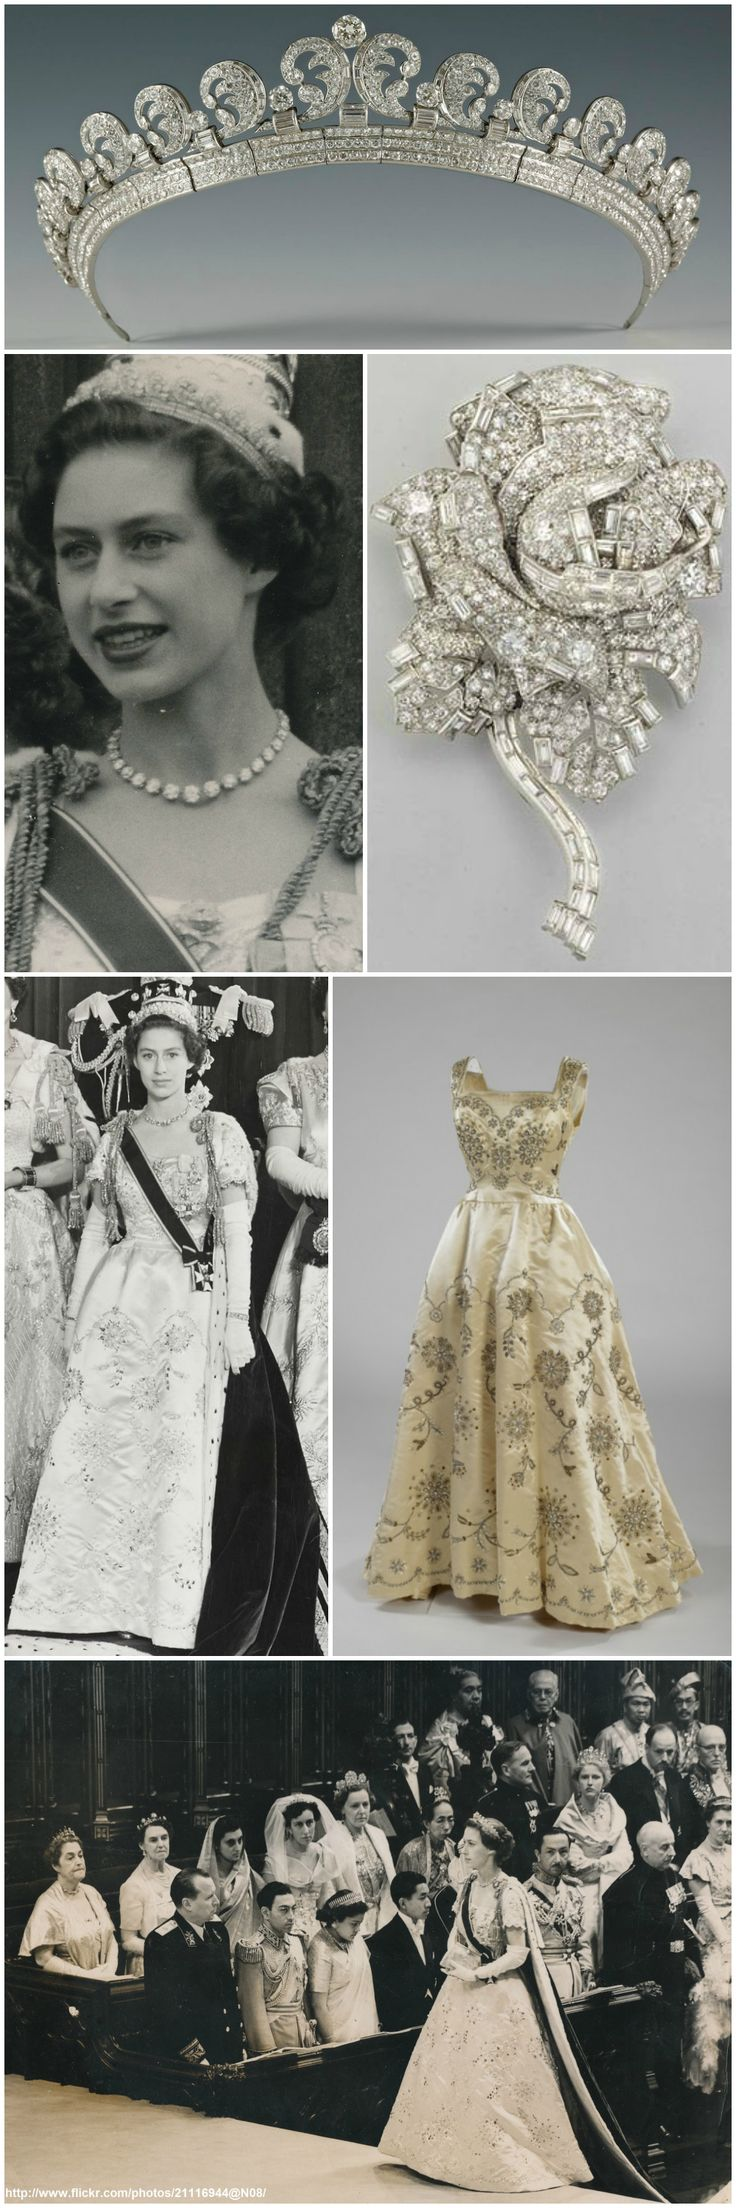 """For the 1953 coronation, H.R.H. Princess Margaret donned a white satin Norman Hartnell dress with an openwork design of broderie anglaise. According to the Royal Collection, the dress was embroidered in crystal with a design of stylized marguerites and roses, in reference to her name Margaret Rose. The sleeves were later removed, so that the dress could be used for other events. She also wore the """"Halo Scroll"""" Tiara and Diamond Rose Brooch (made by Cartier in 1936 and 1938, respectively)."""